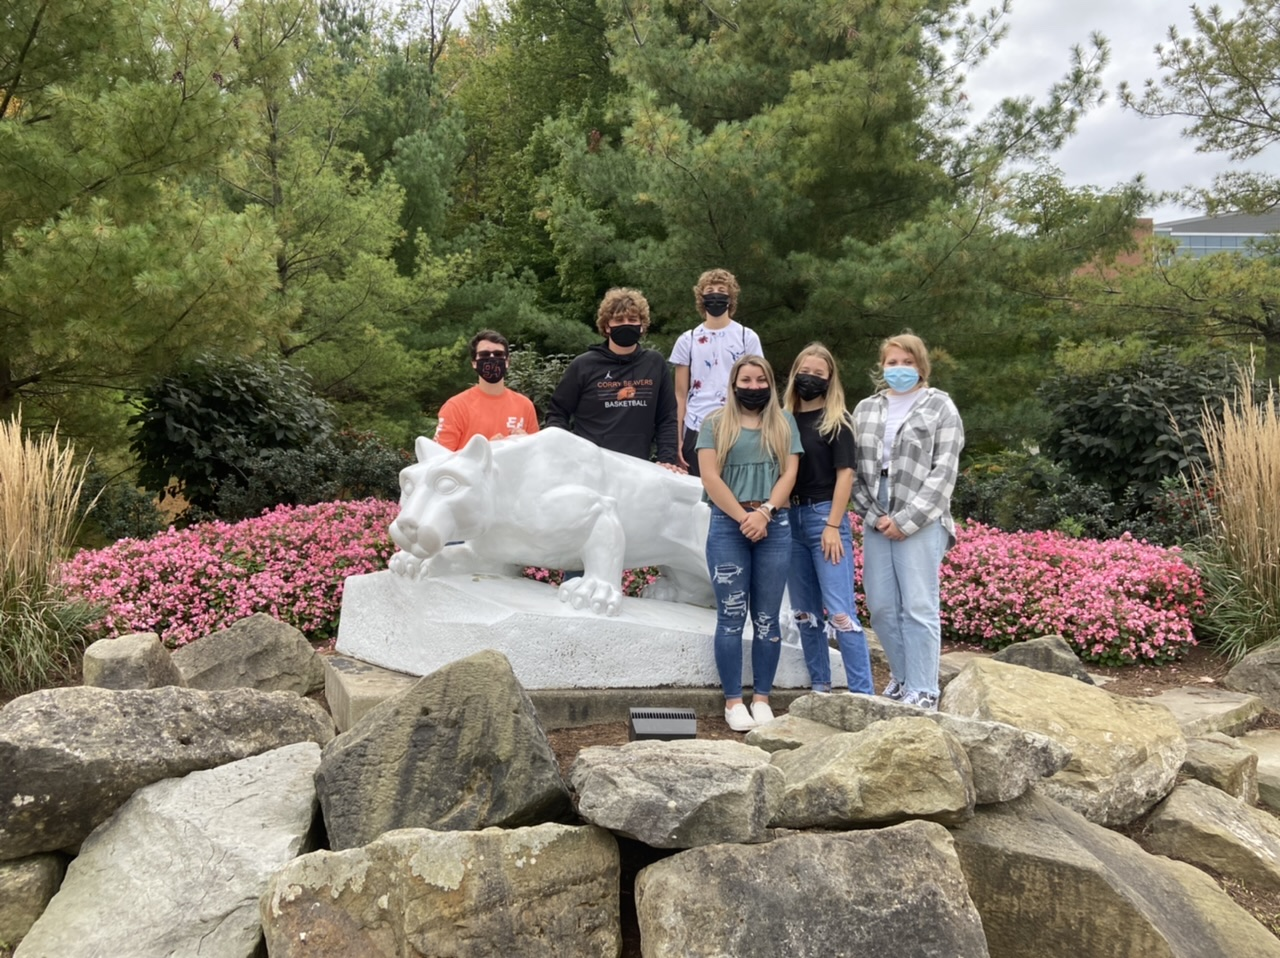 A group of students posing in front of the Nittany Lion at Penn State Behrend Campus